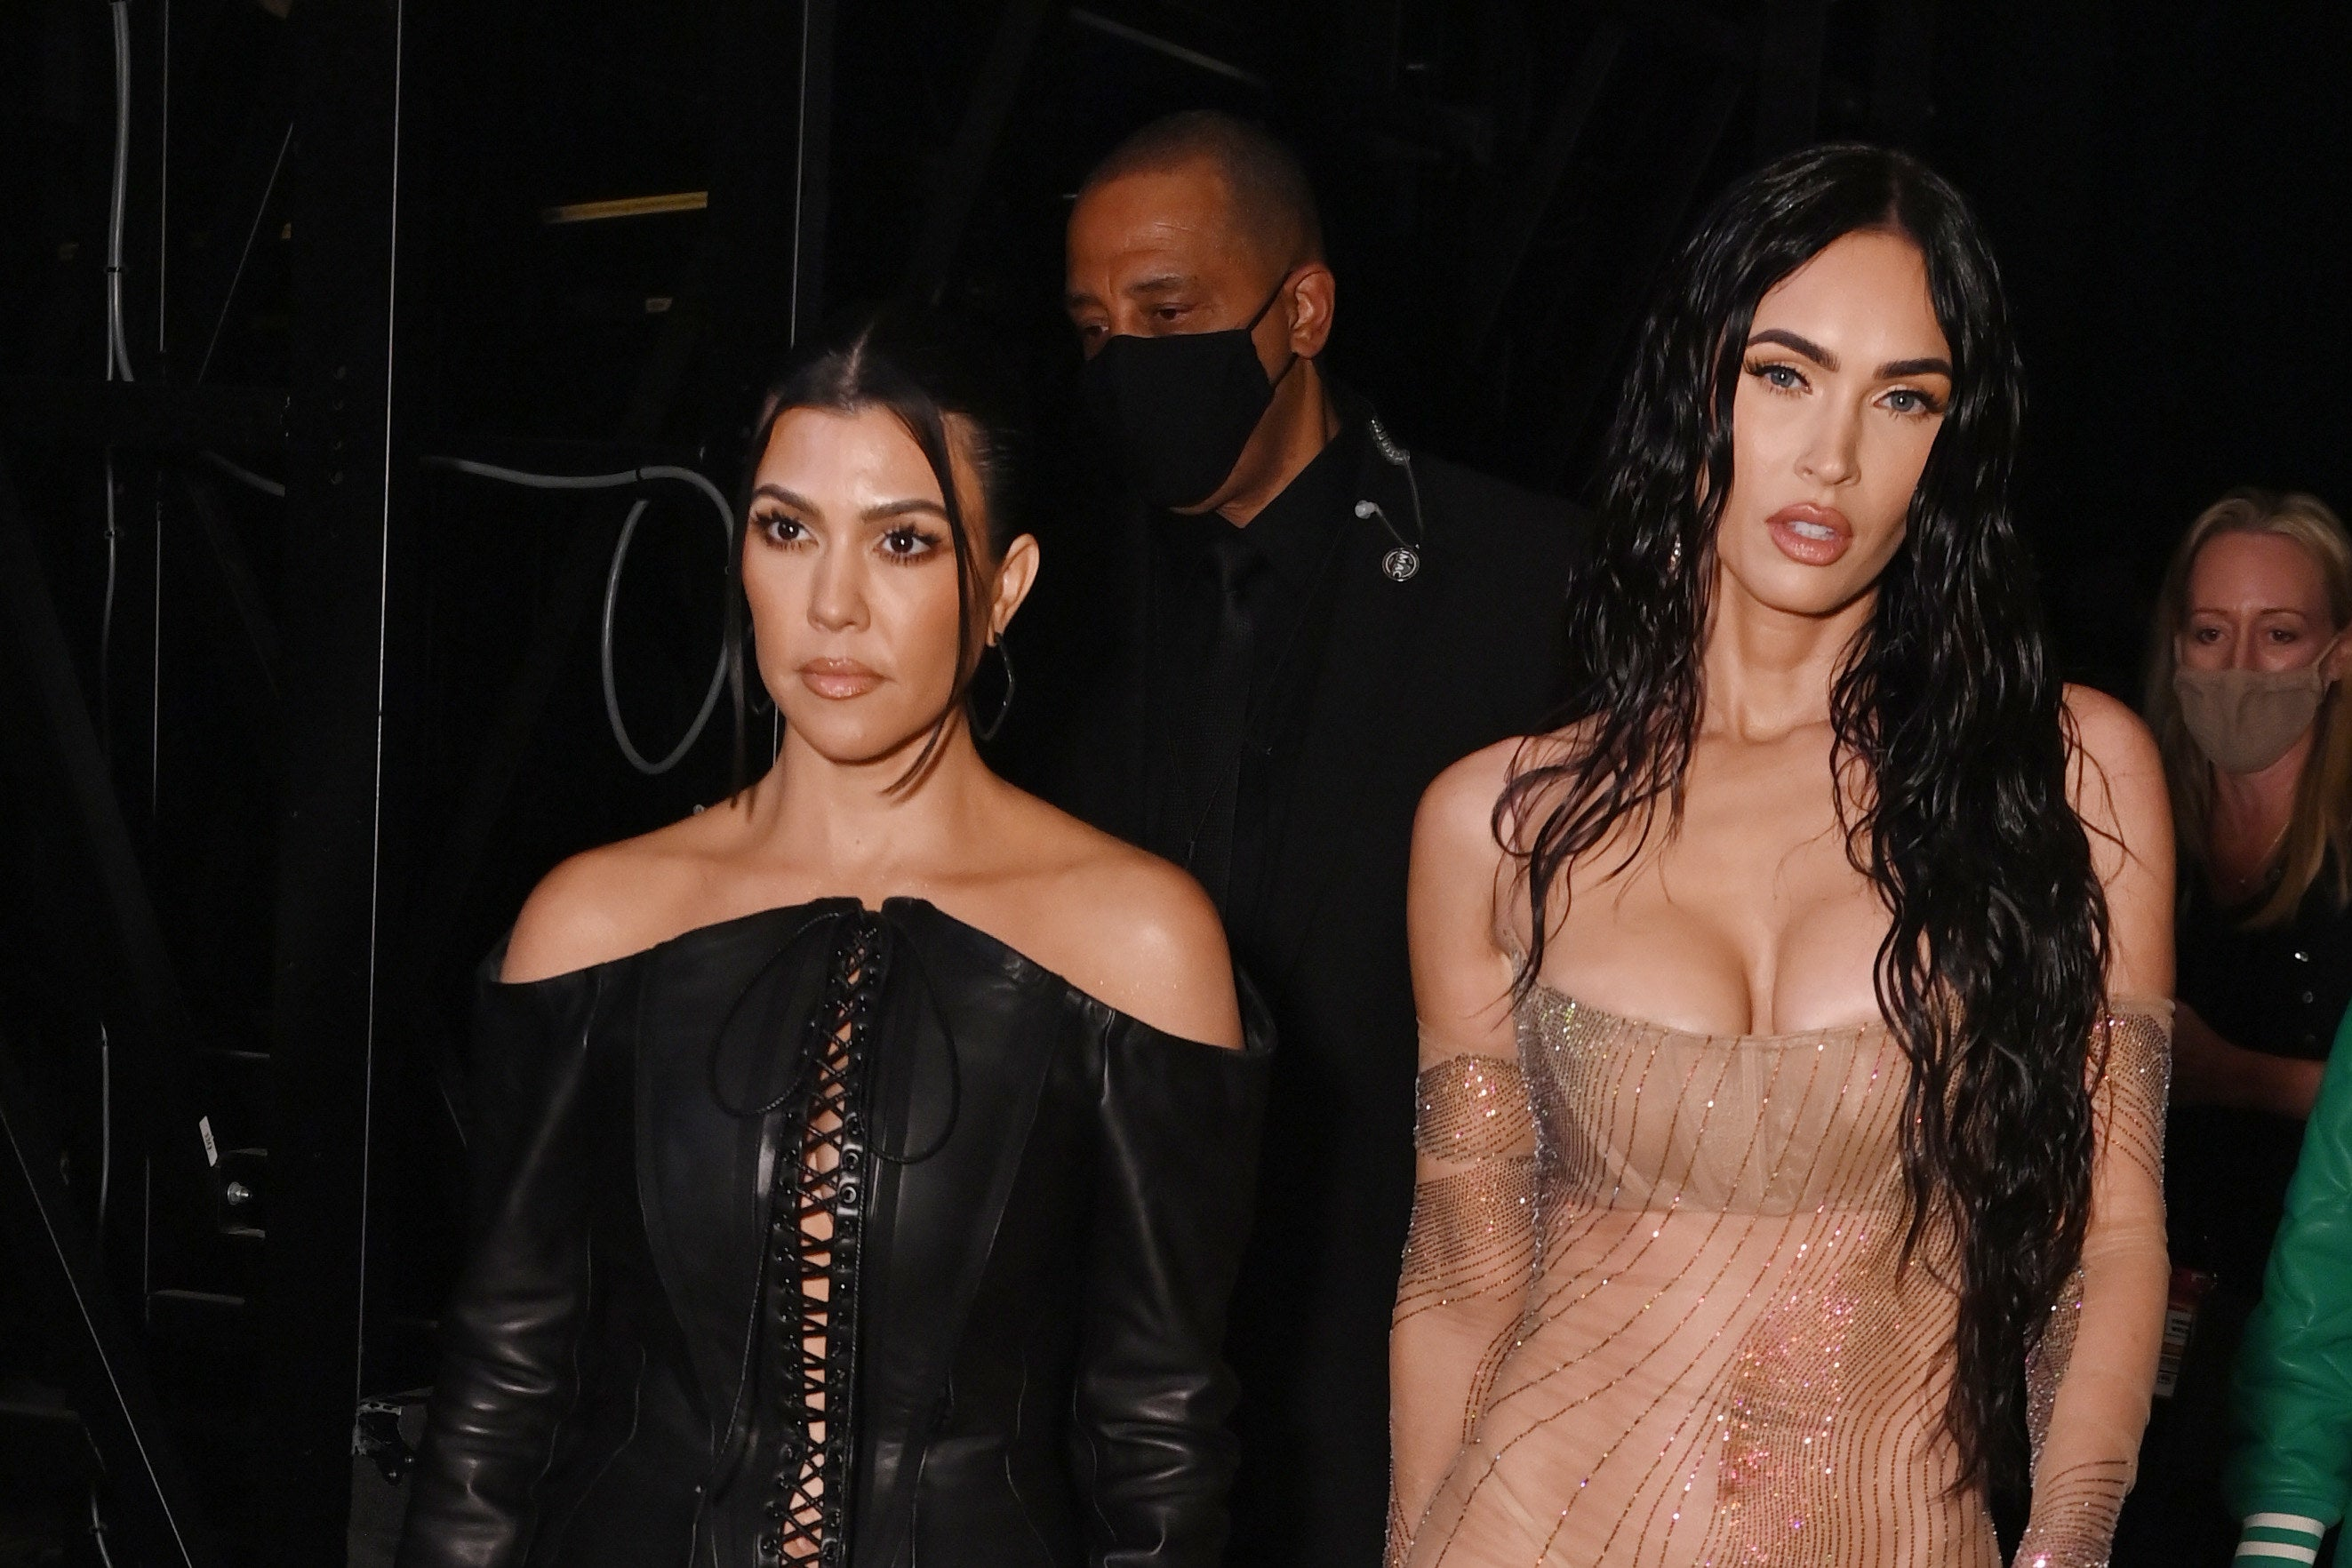 Kourtney Kardashian And Megan Fox Were Accused Of Copying Draya Micheles Concept For Their SKIMS Shoot